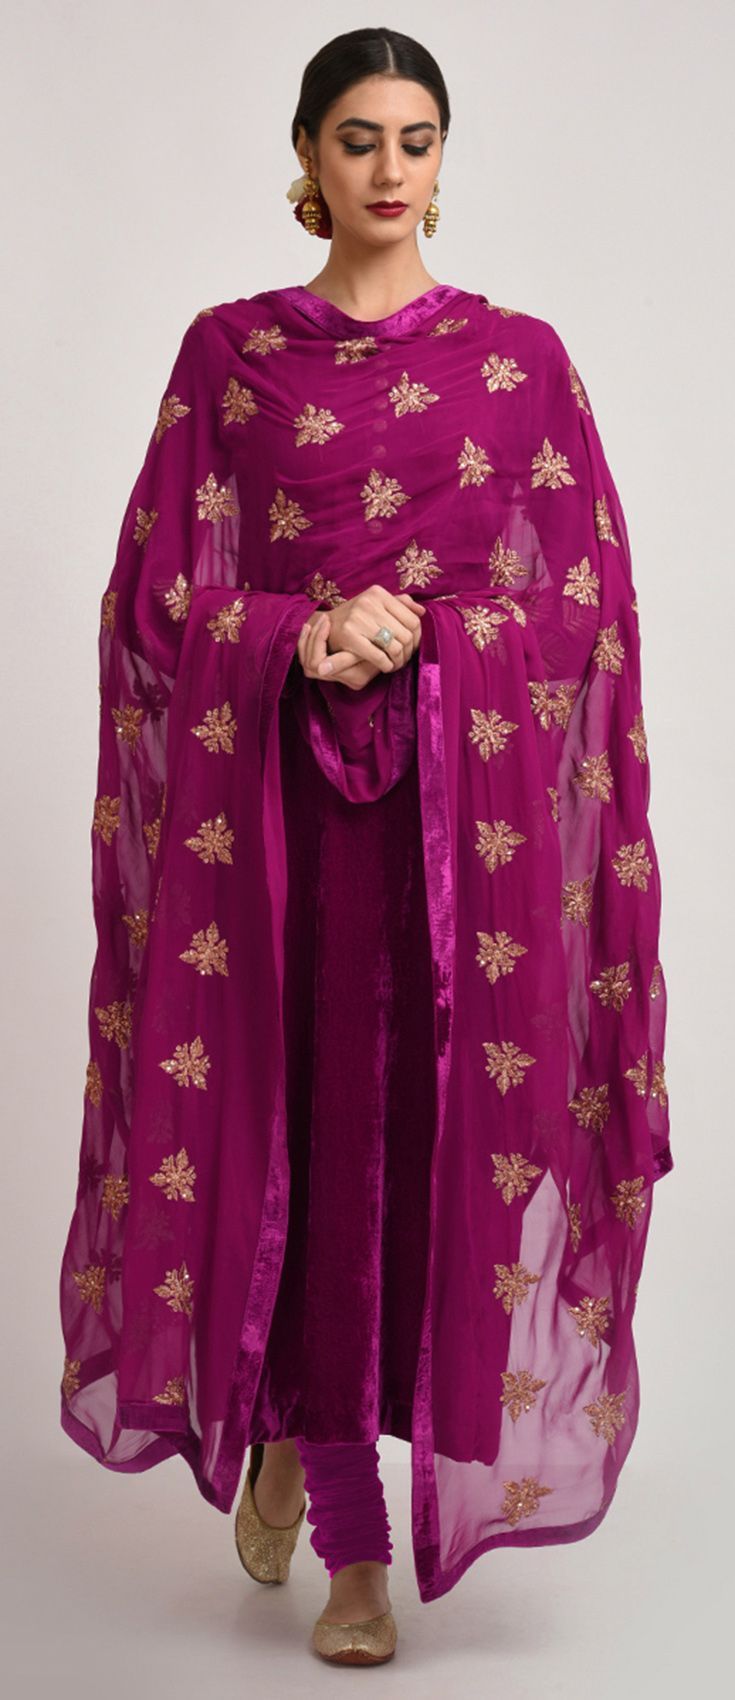 54367cdcf6 Purplish Magenta Silk Velvet Tilla Suit With Dupatta in 2019 | Stuff ...